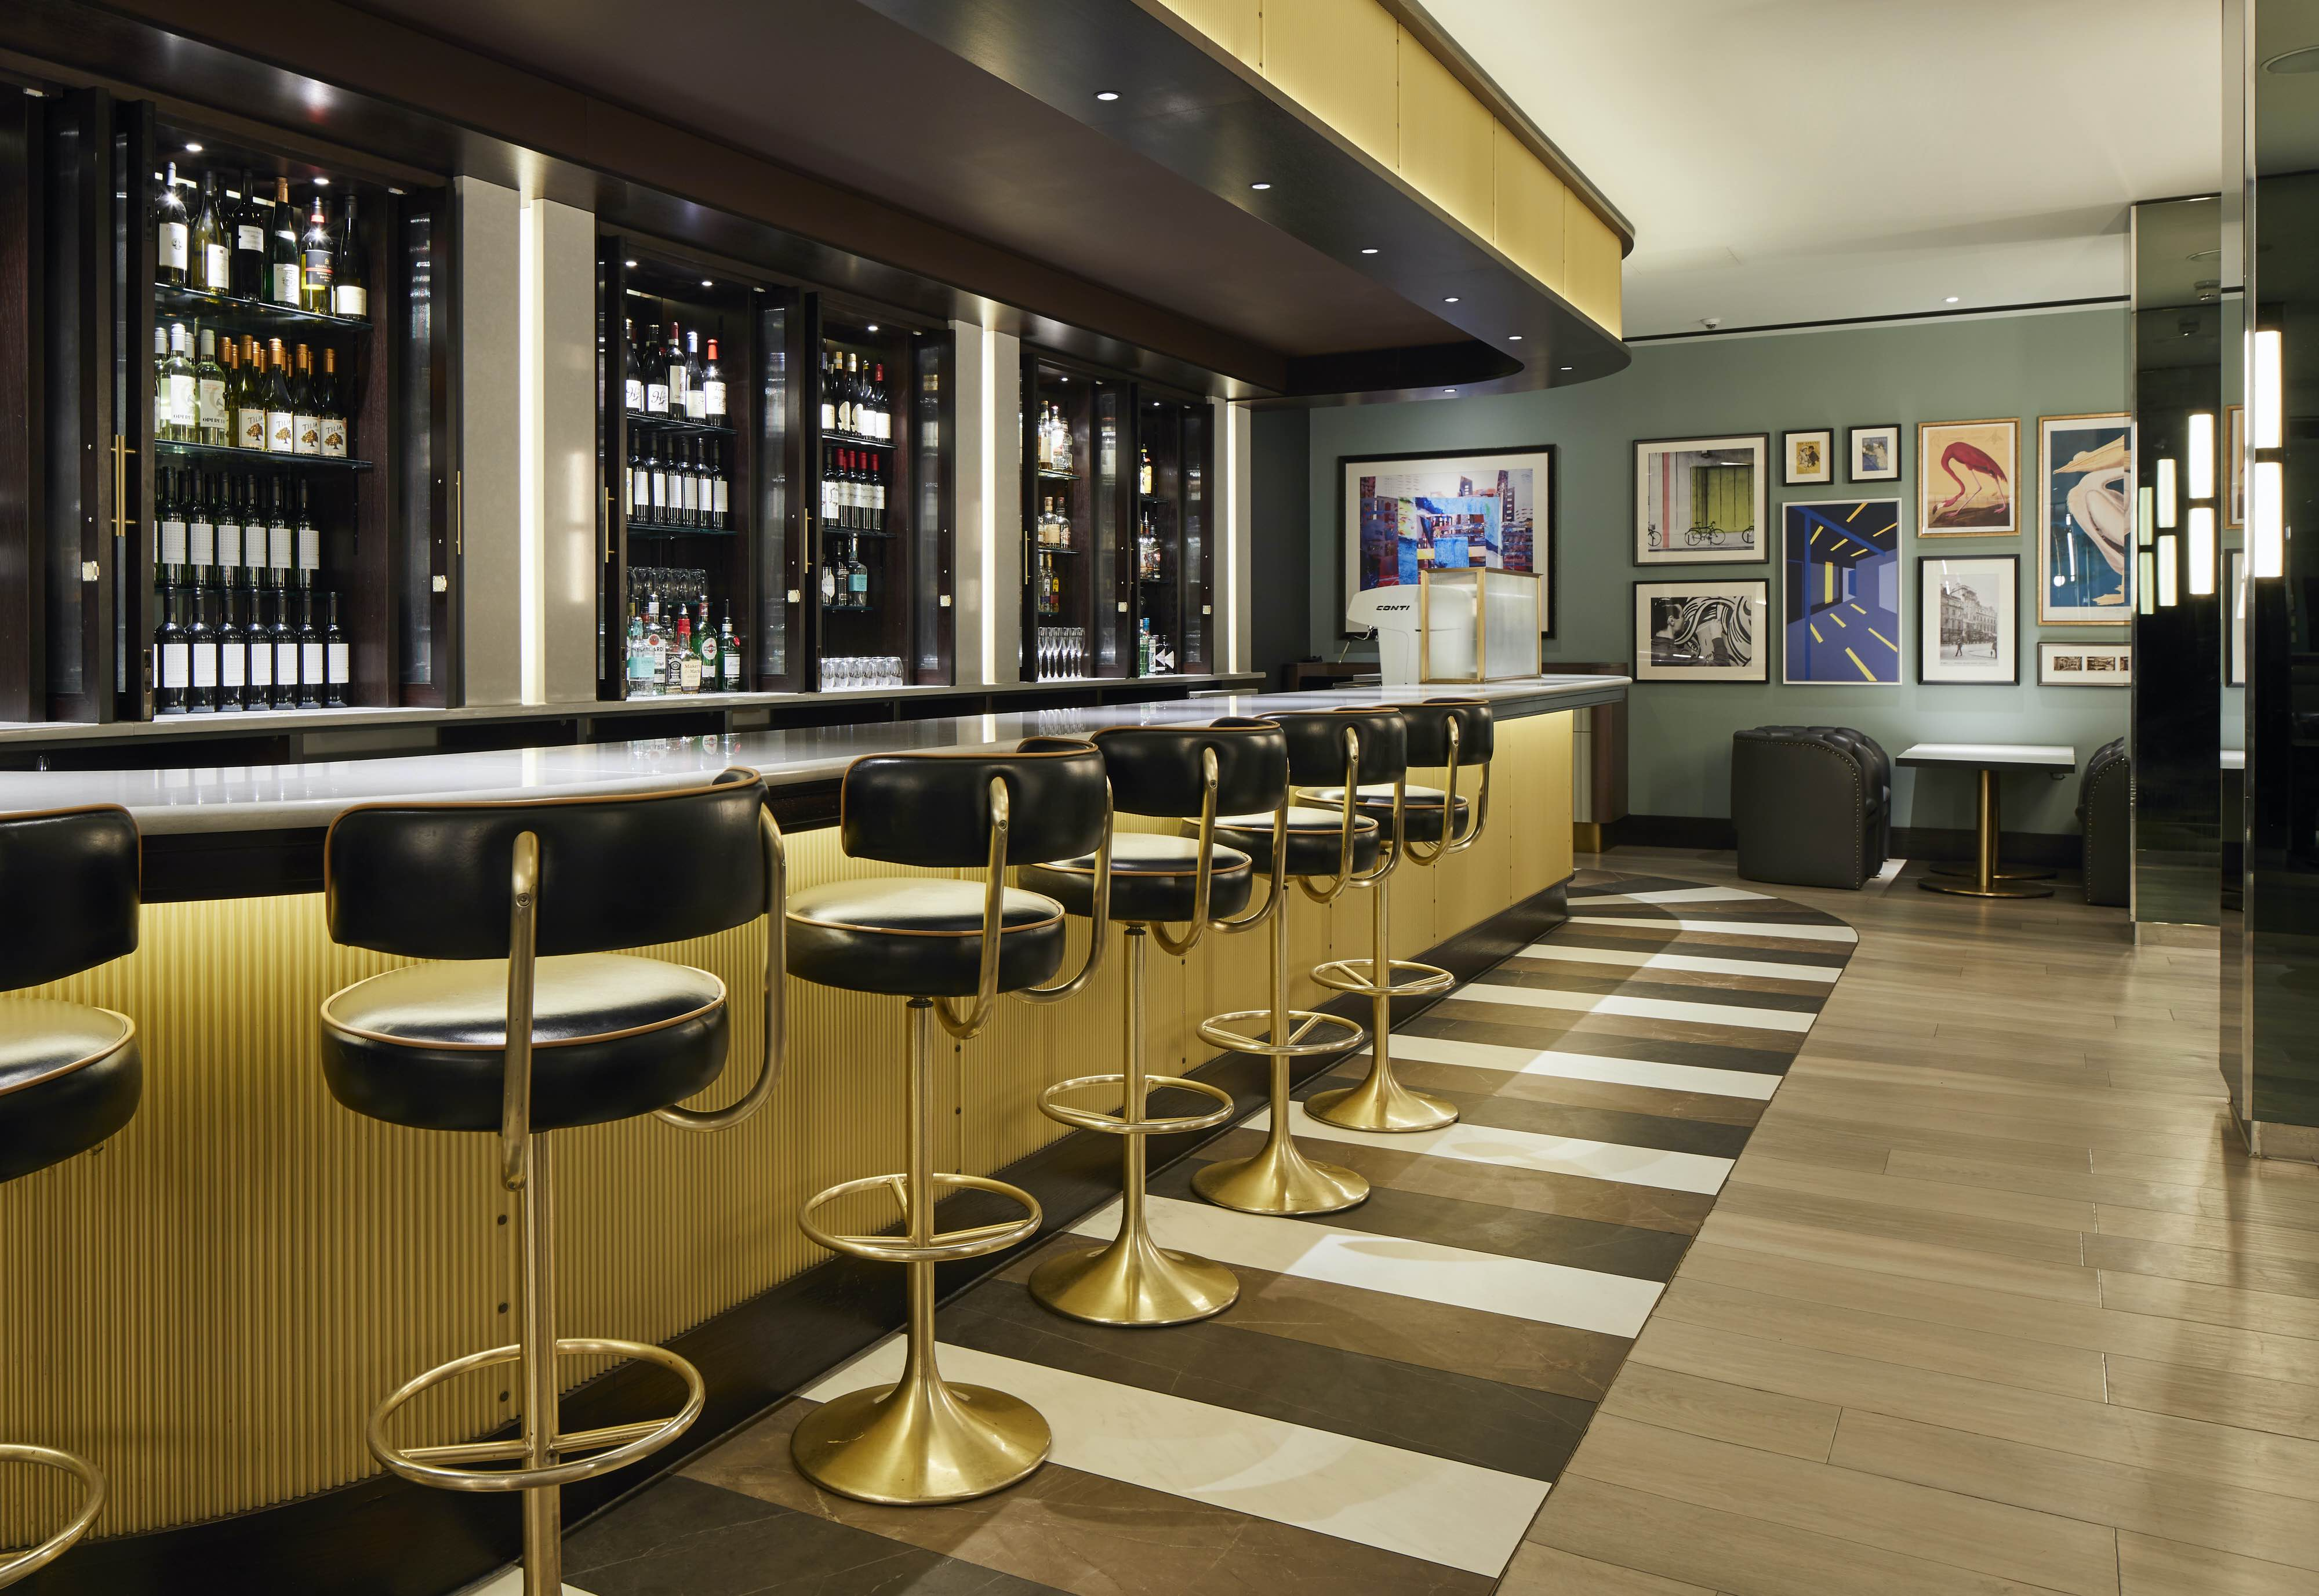 Image of the Bar interior at The Strand Palace Hotel, London